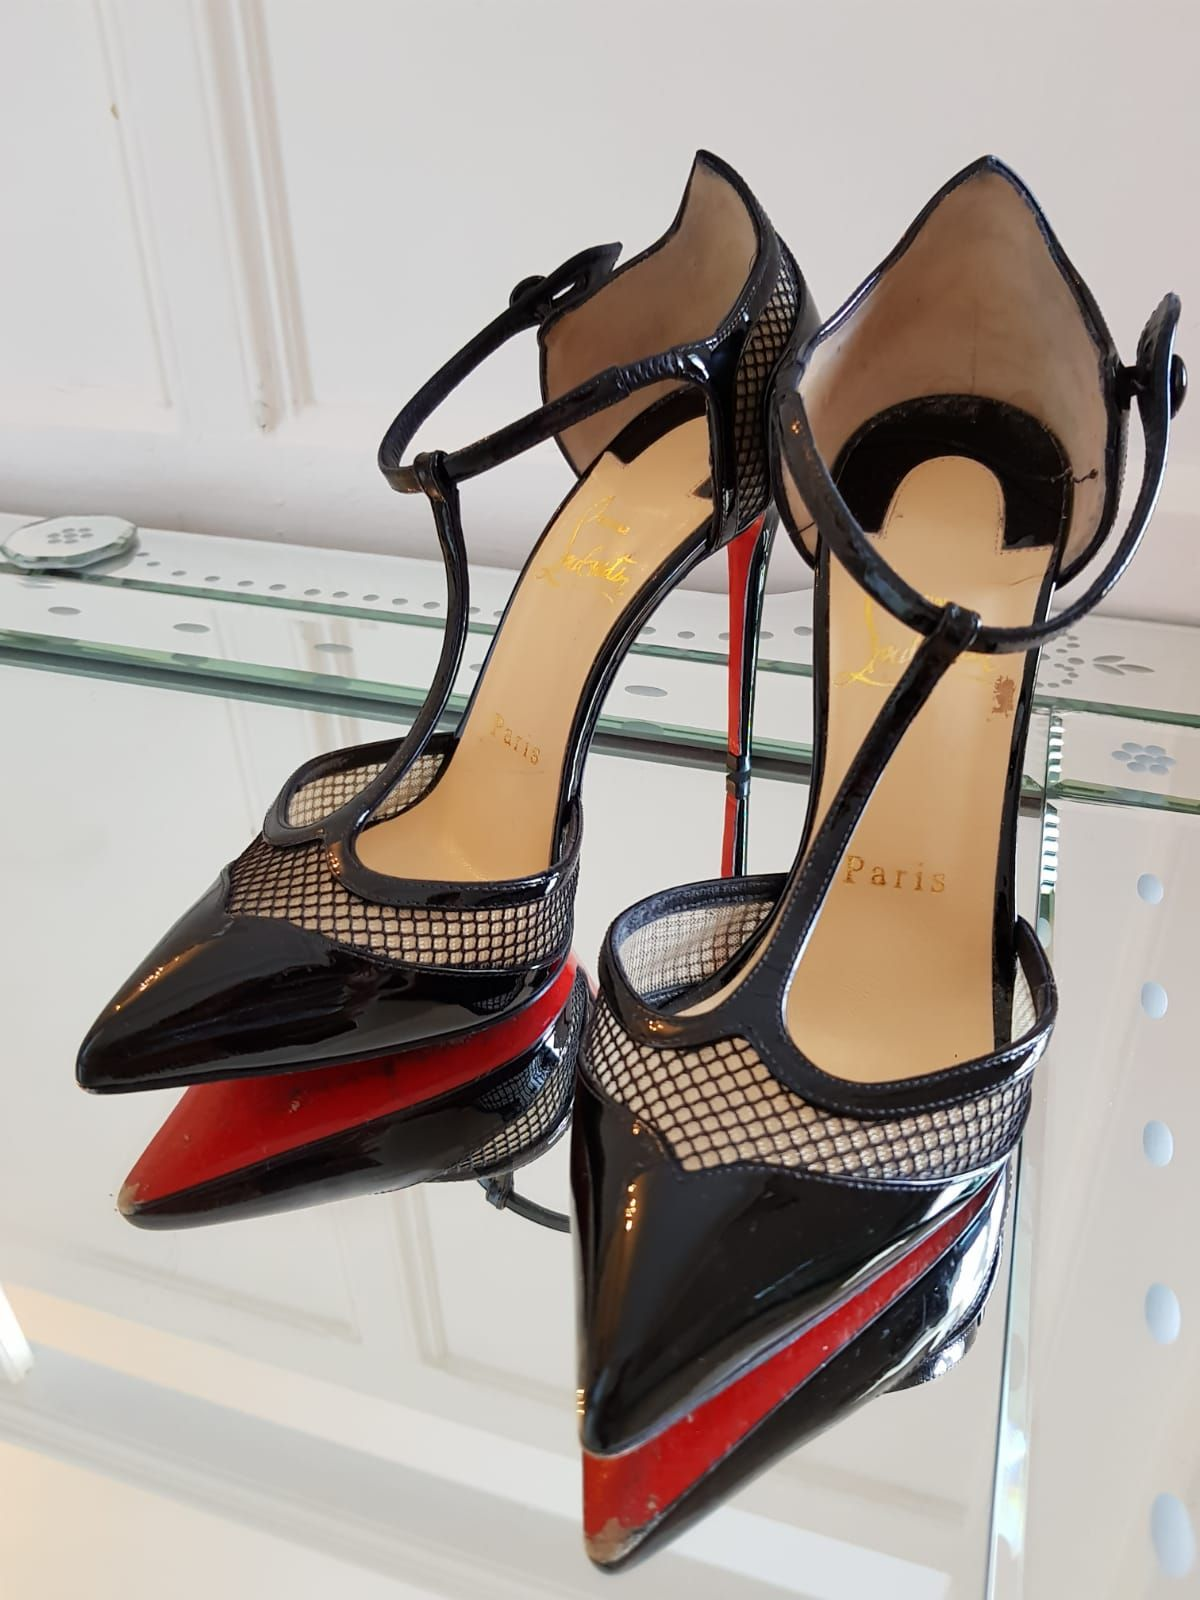 74304fb0315 Christian Louboutin Mrs Early 100 black patent heels